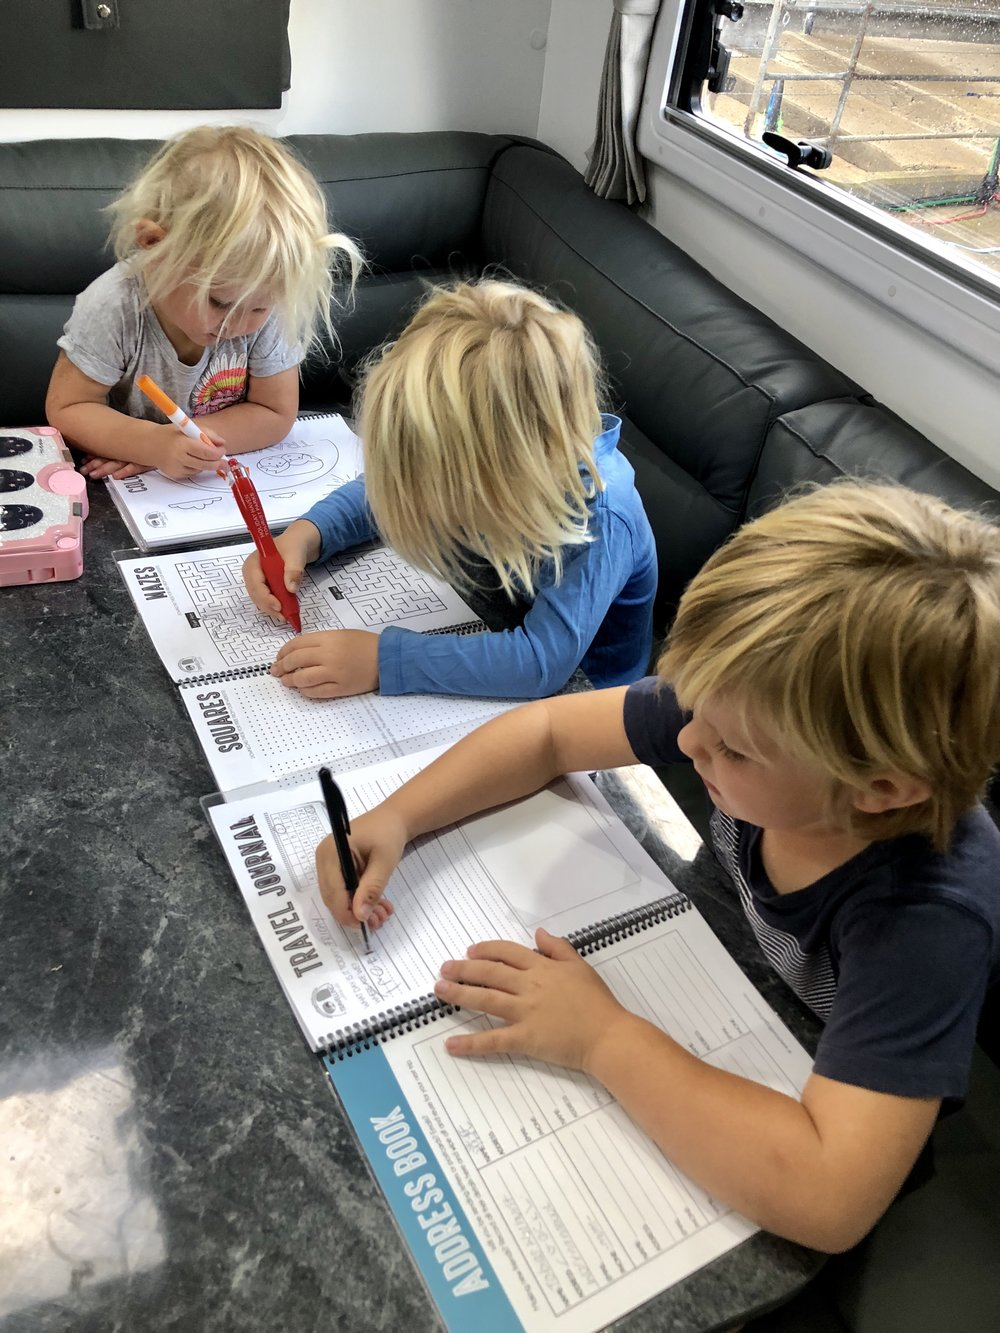 Using their Travel Journal from Caravanning With Kids.